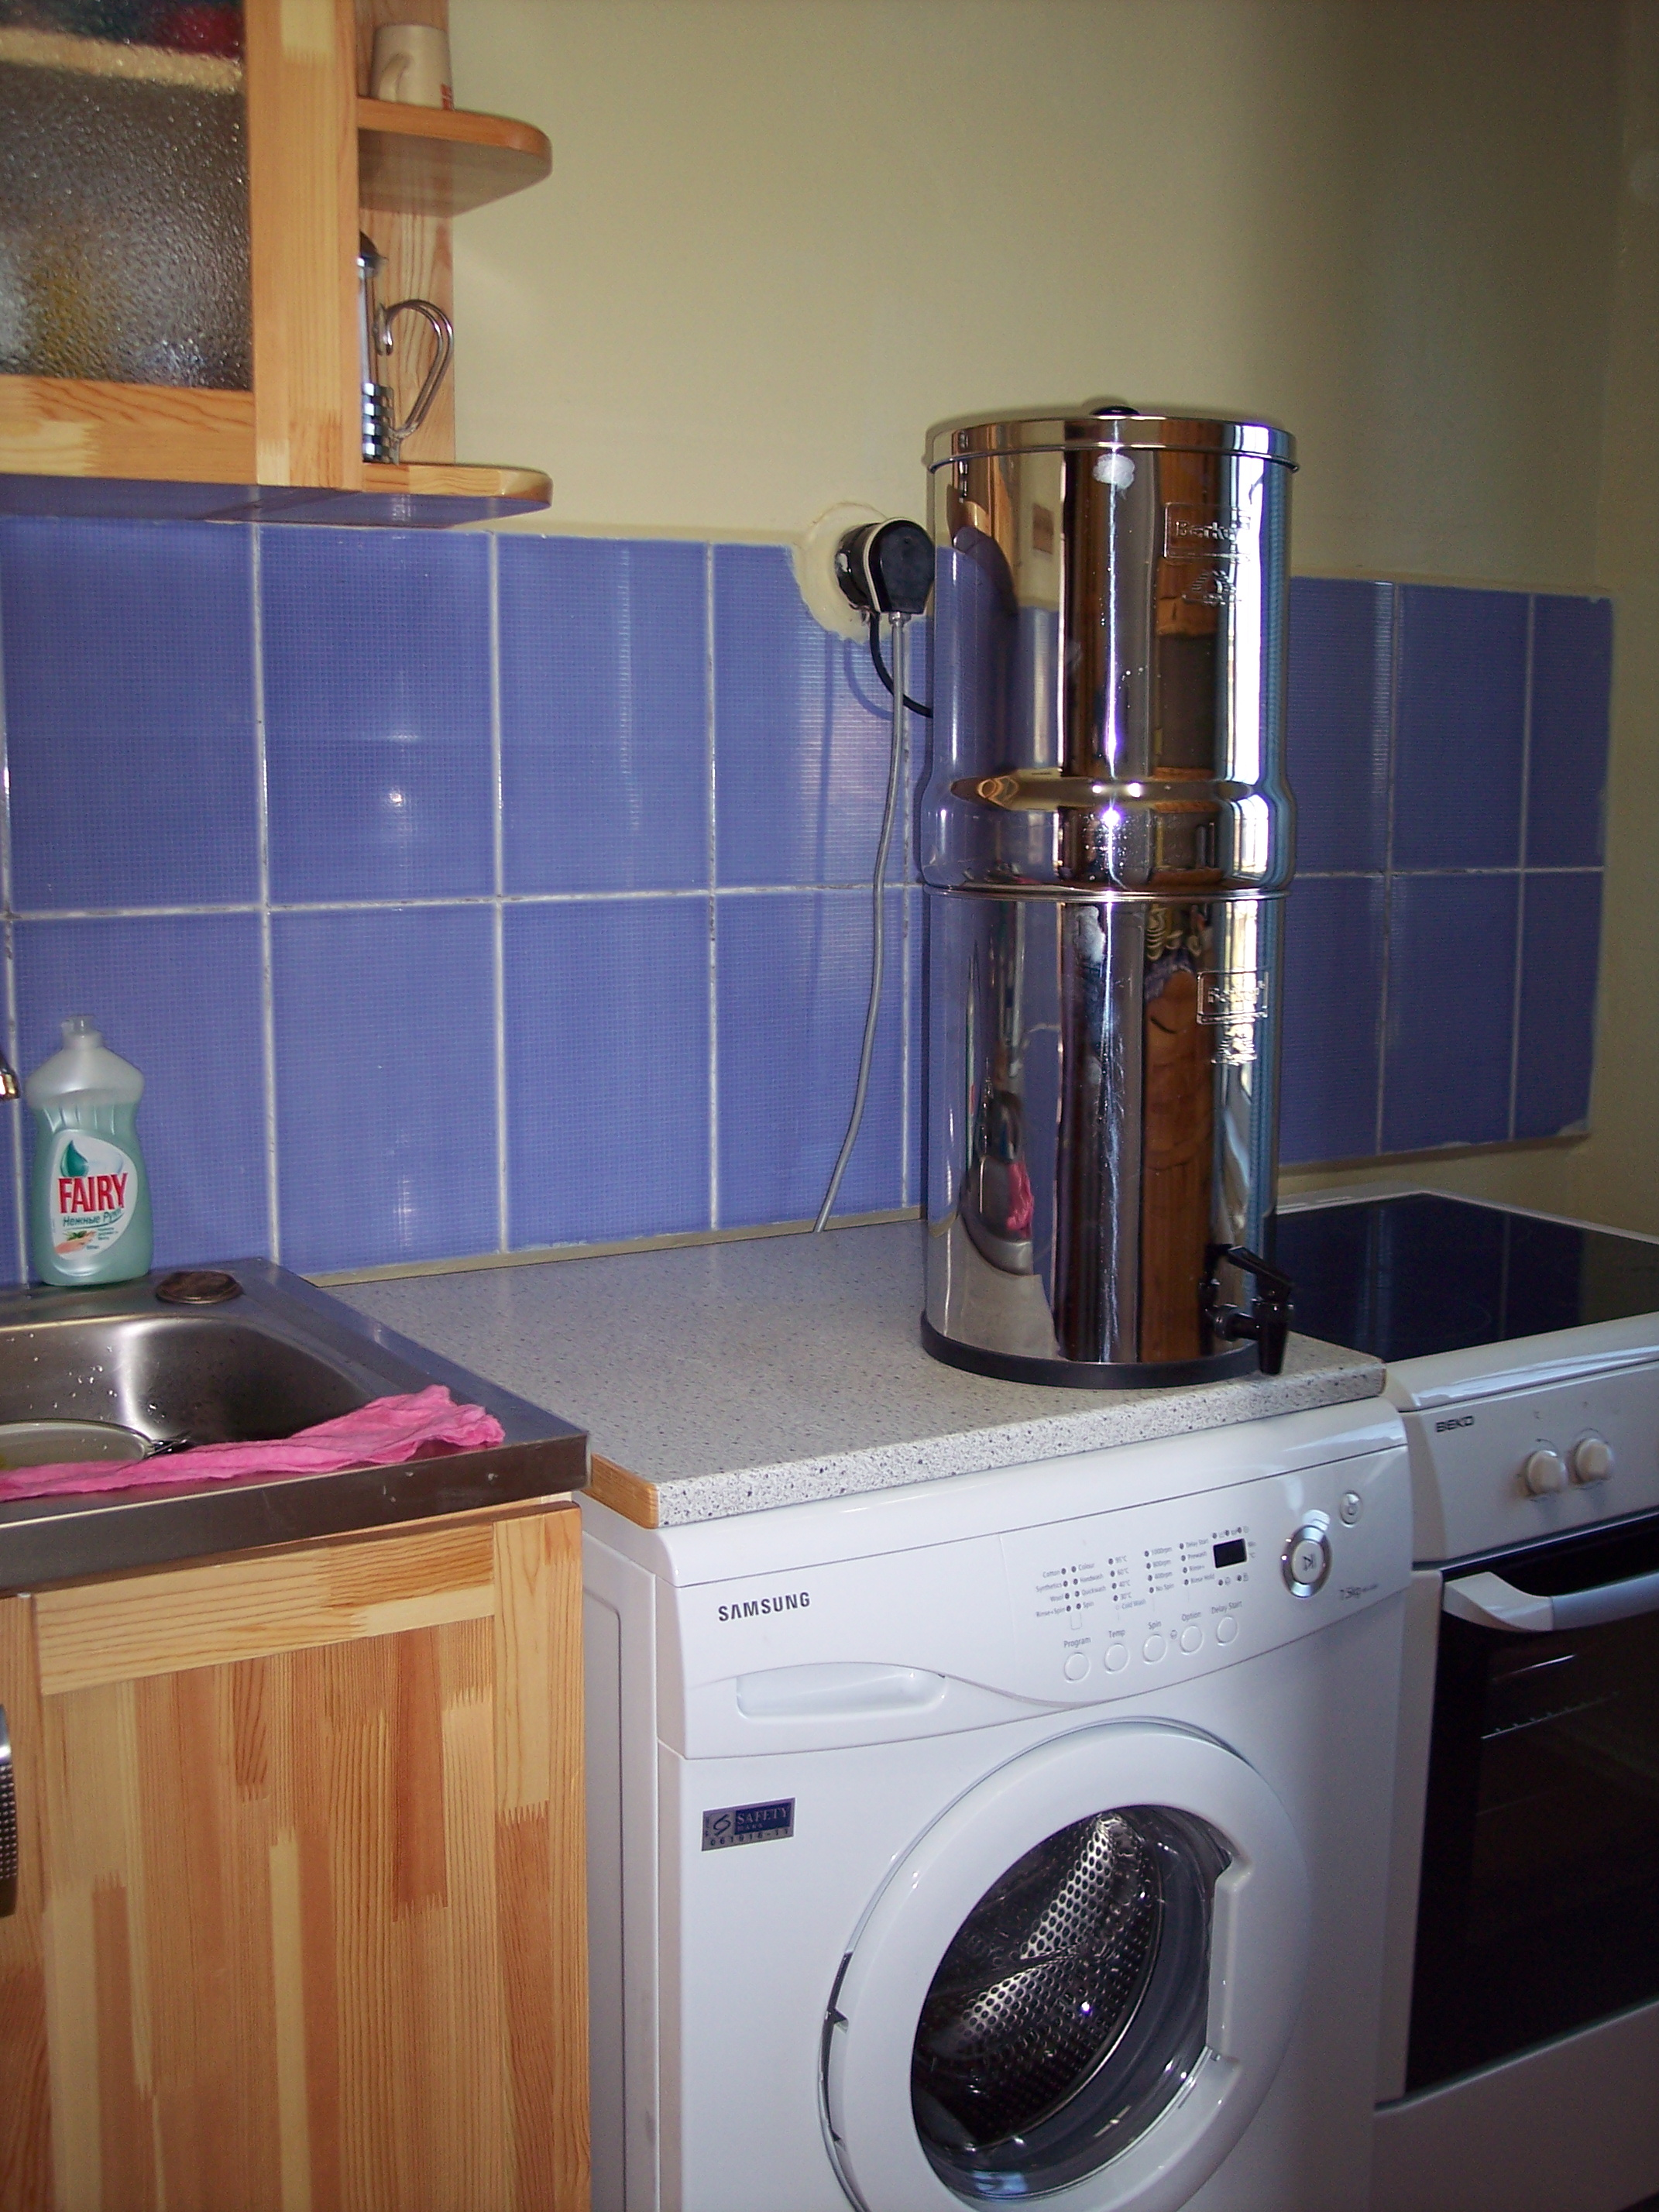 water filter, washer, stove